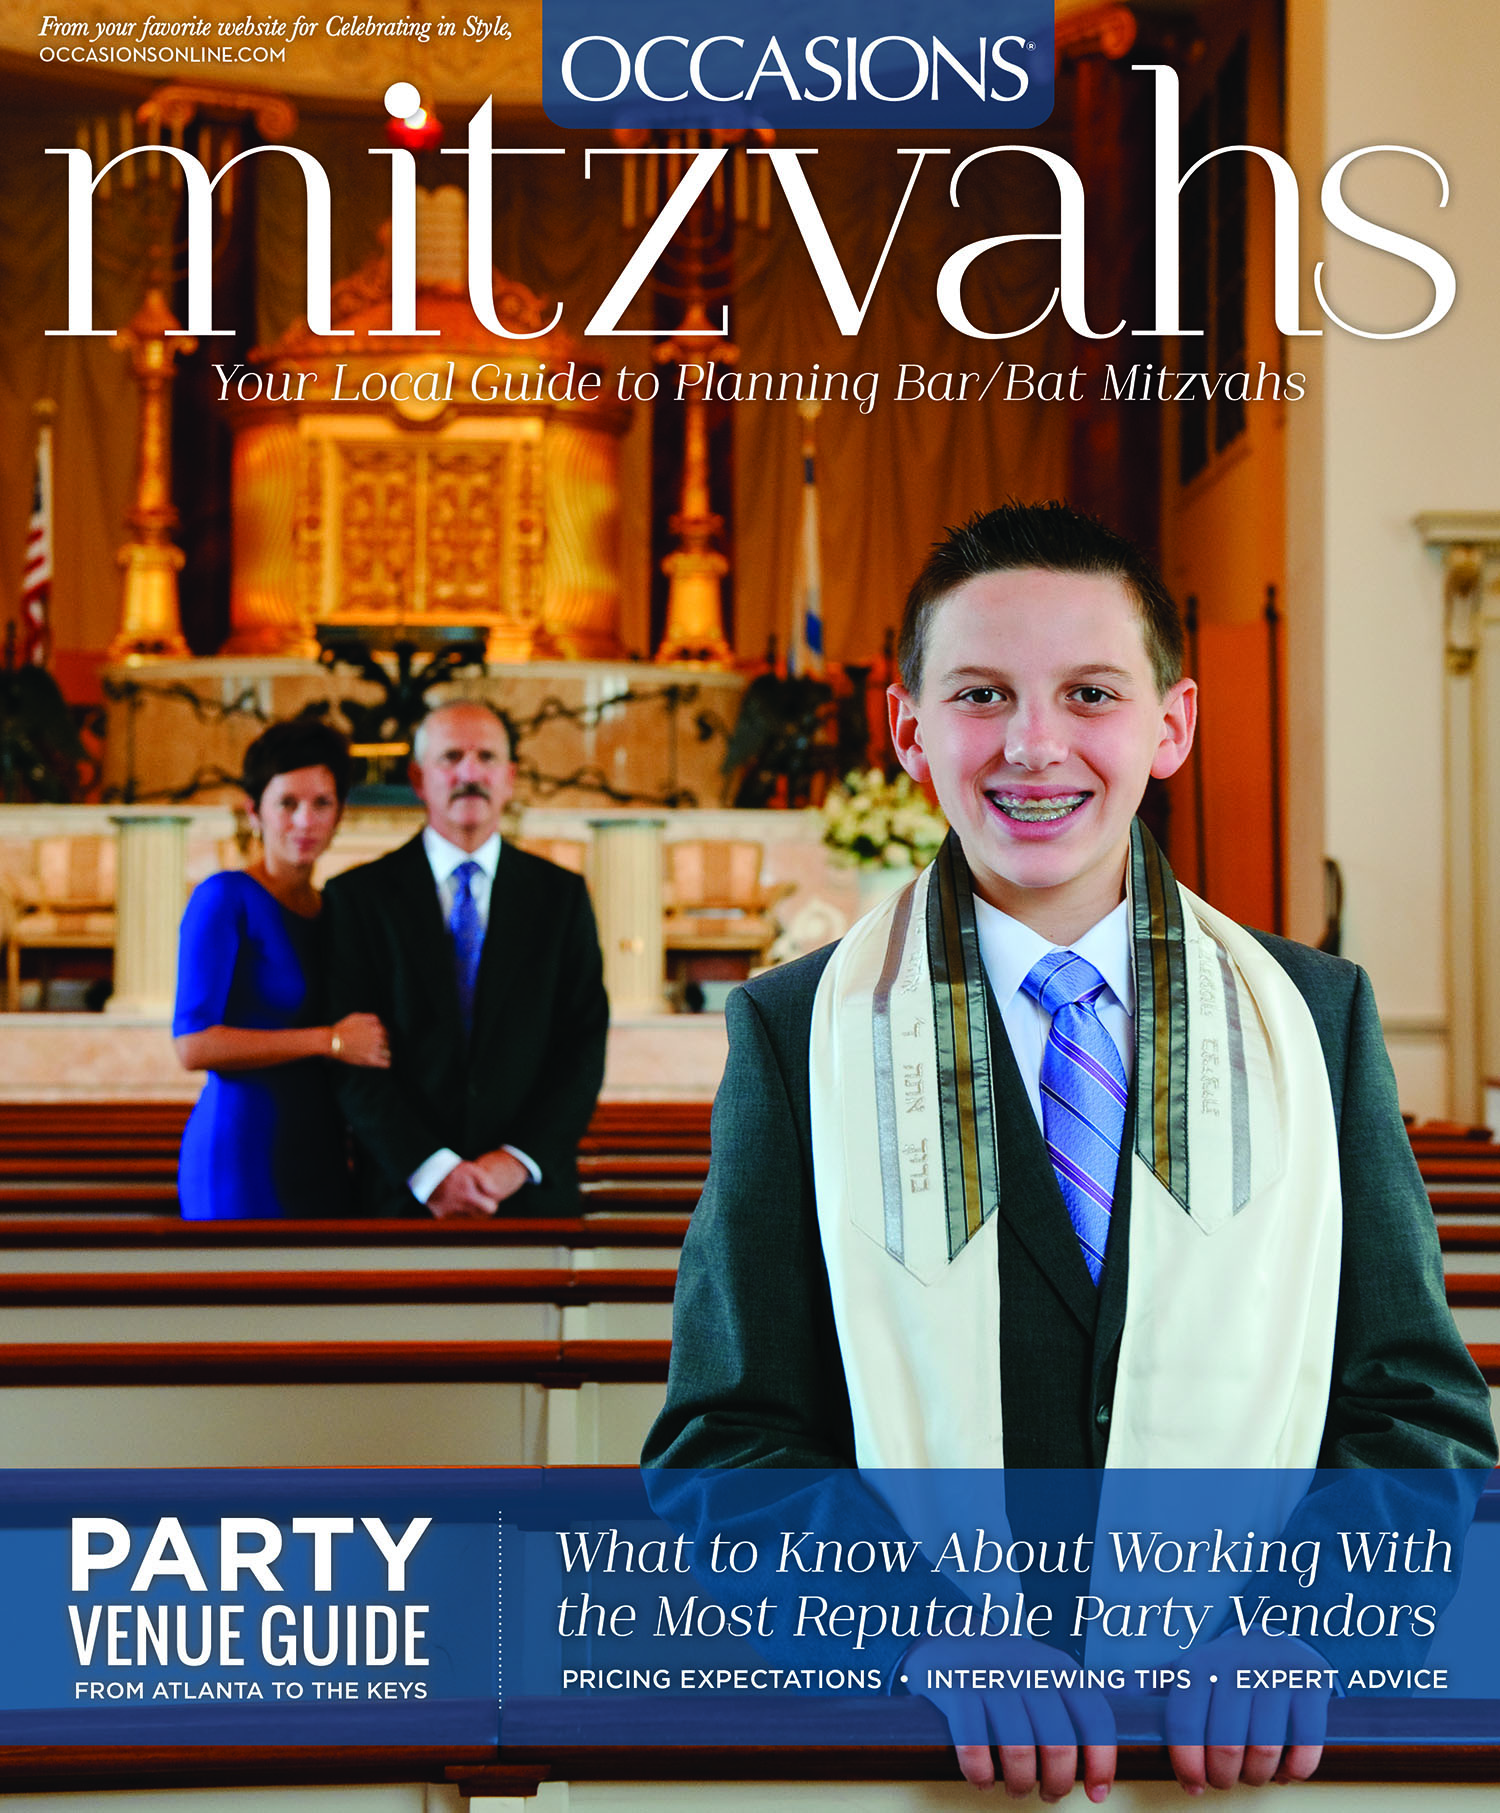 712241658475 The First Annual Occasions: Bar/Bat Mitzvah Guide is Now On Sale ...